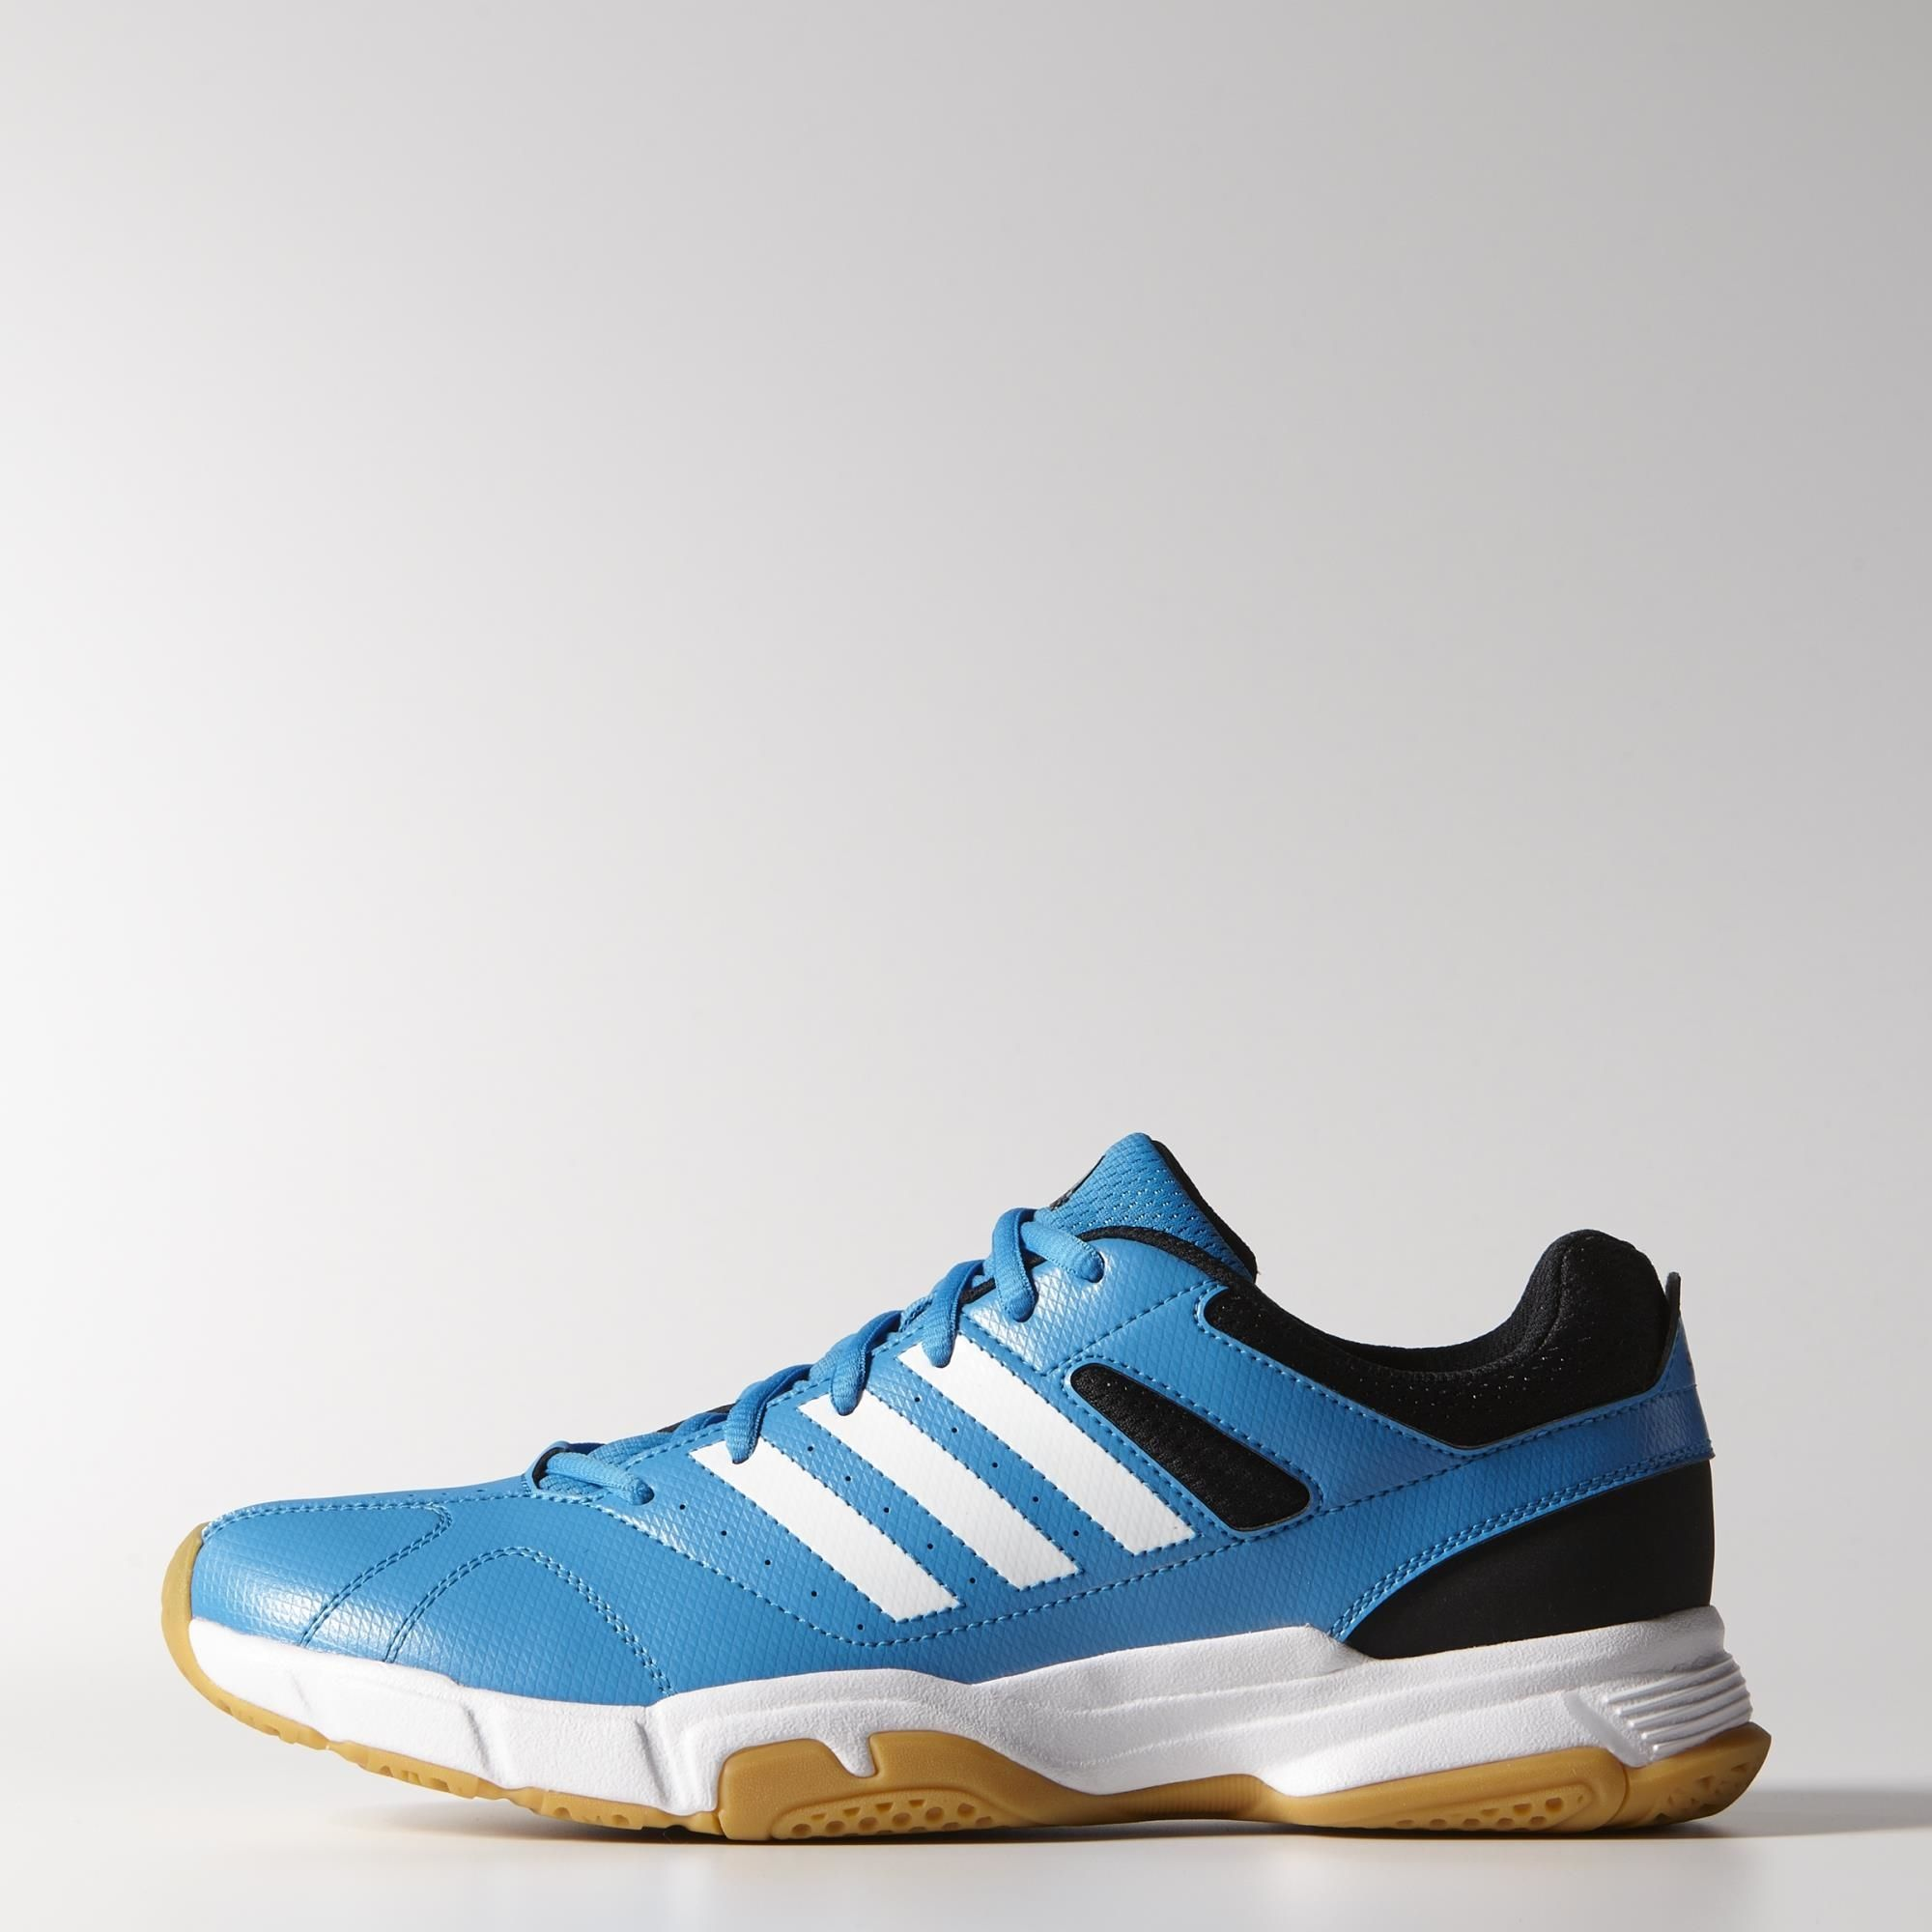 Quickforce 3 Badminton Chaussures adidas Badminton Badminton 3 Pinterest 7d6317